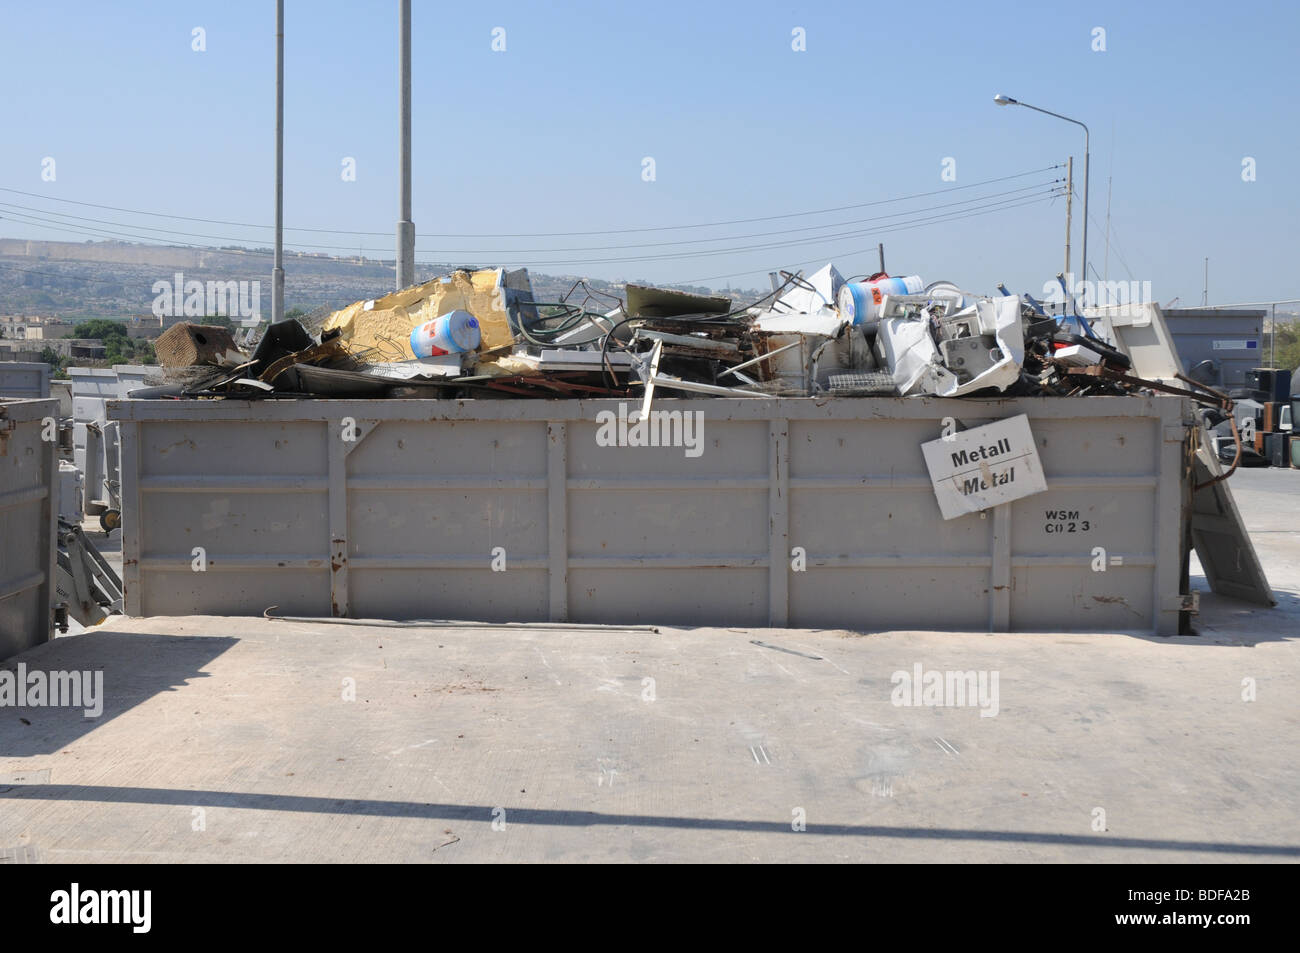 A section in a civic amenity site where metal scrap is source separated and disposed for recycling. Waste management Stock Photo